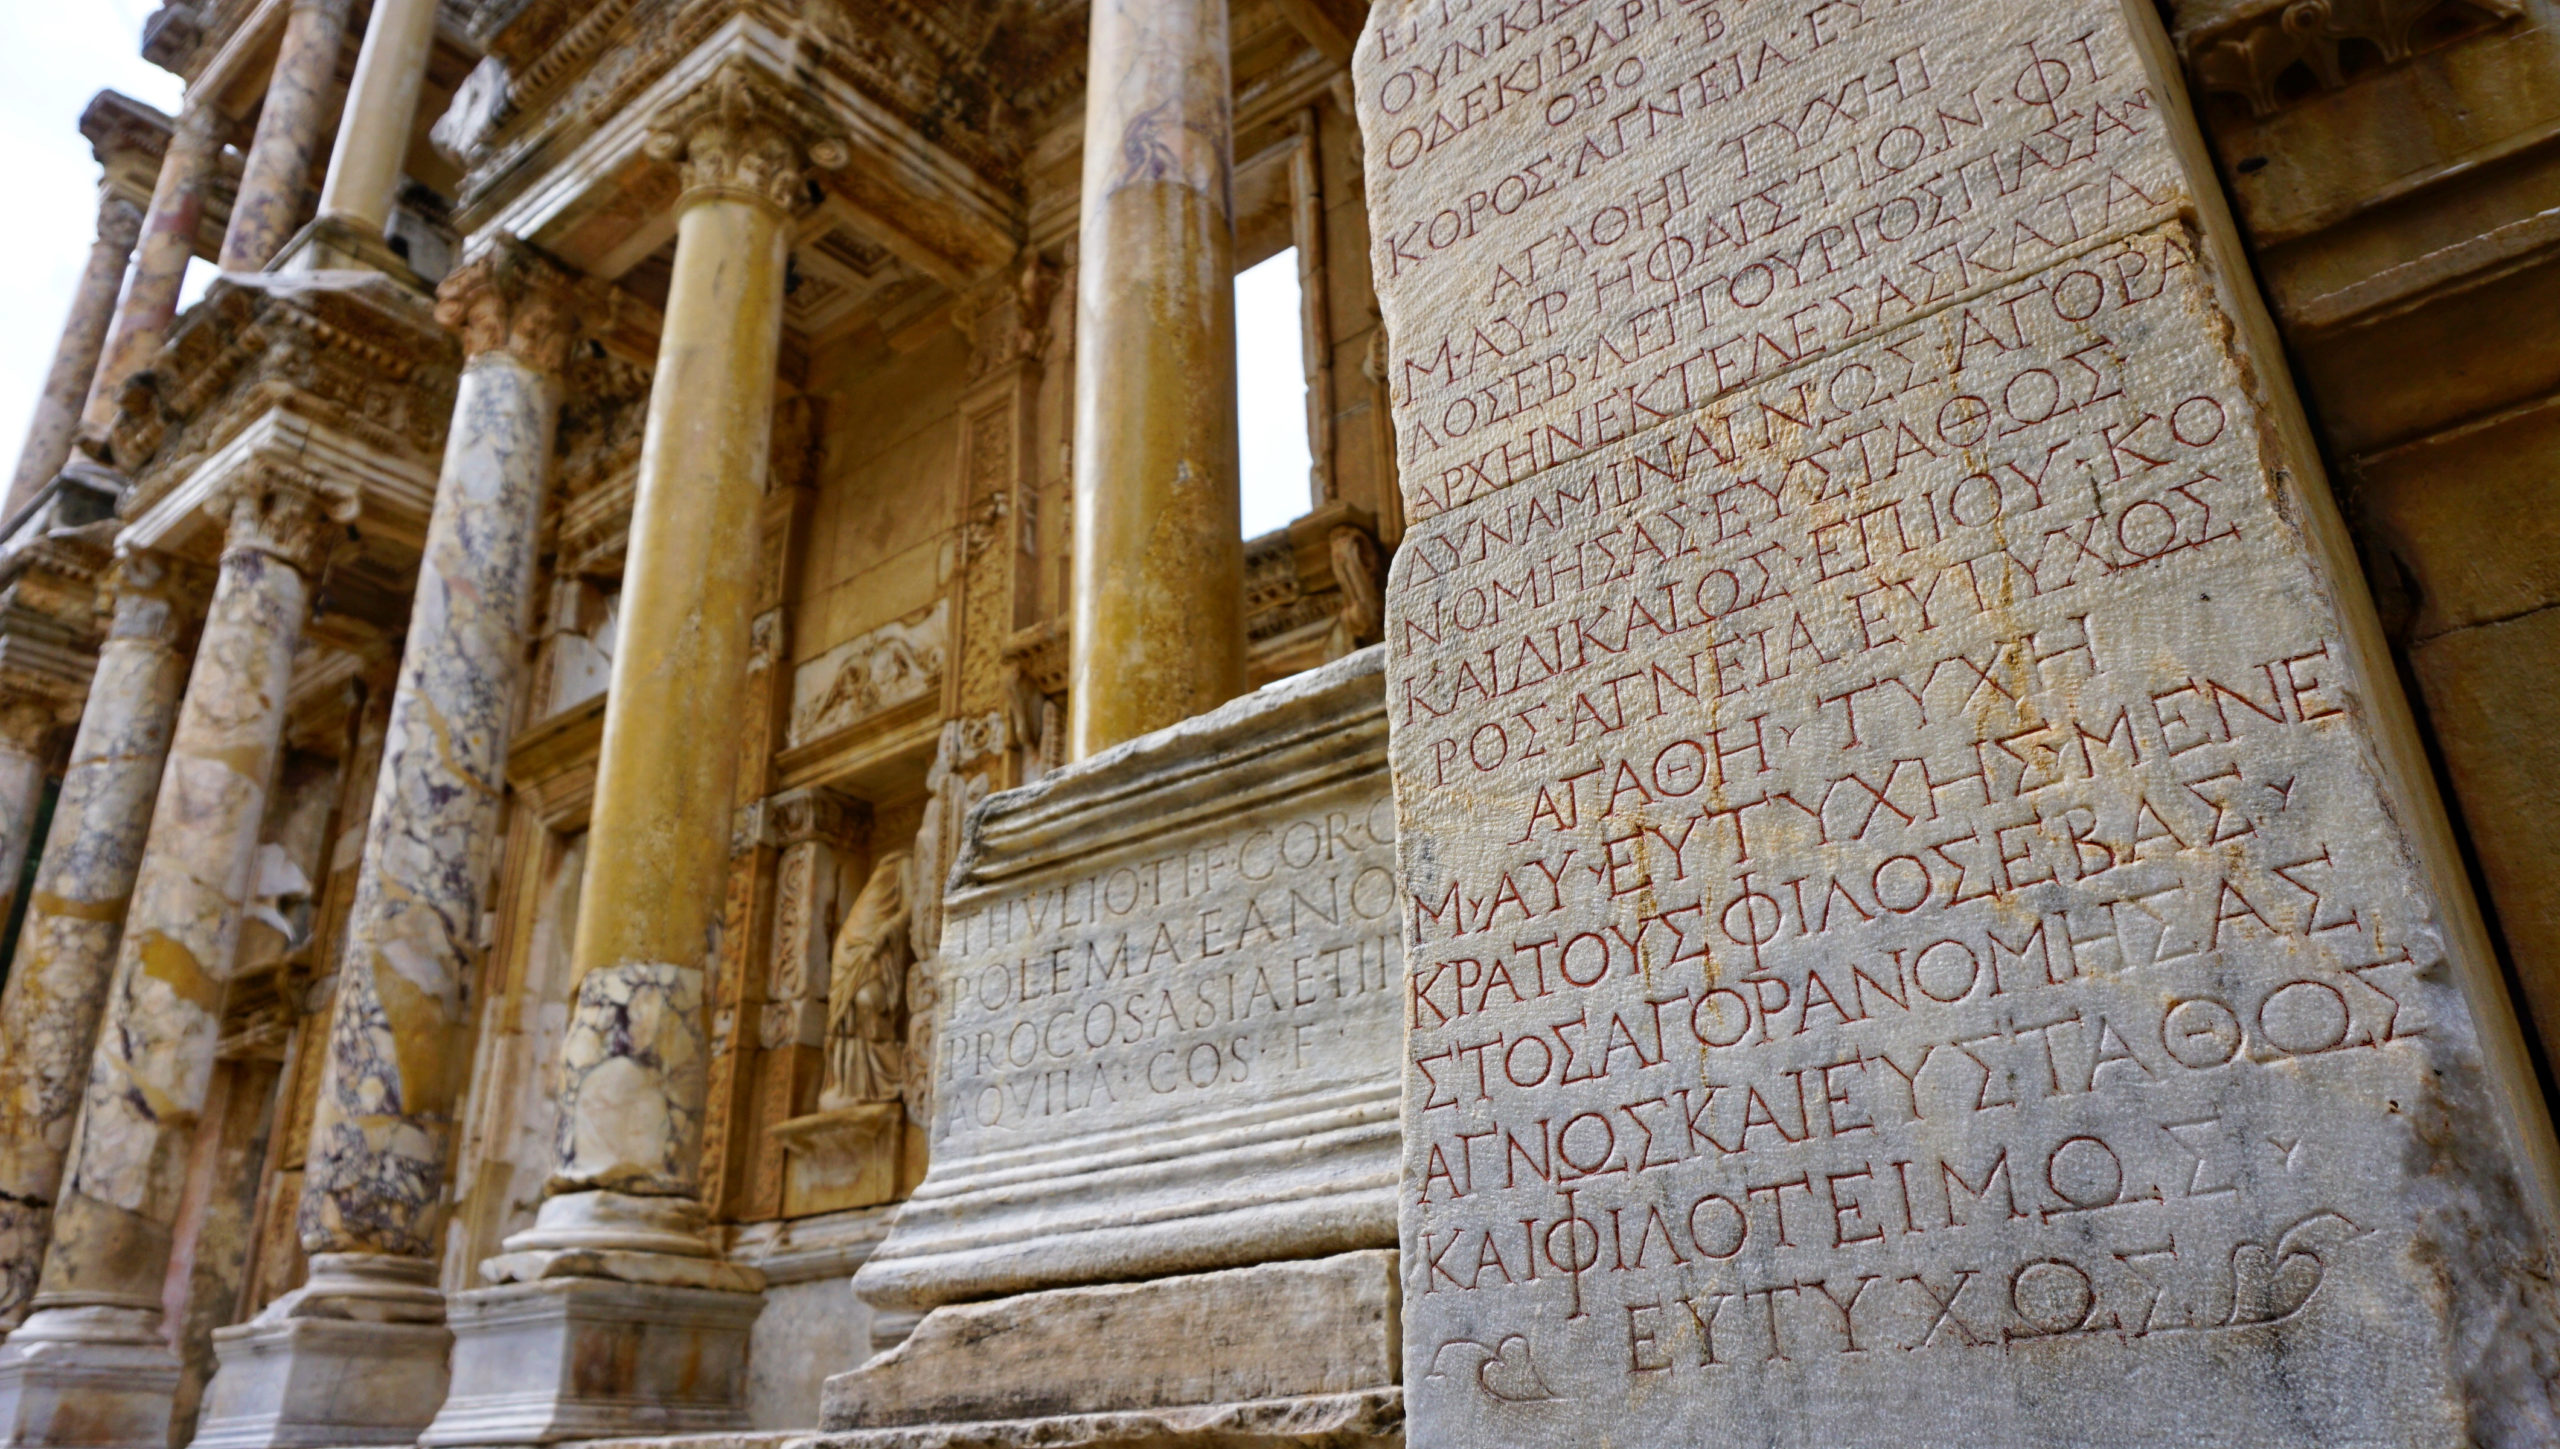 They say that with old age comes wisdom, so does that mean you'll get wiser by studying these languages? Check out our list of the oldest spoken languages.